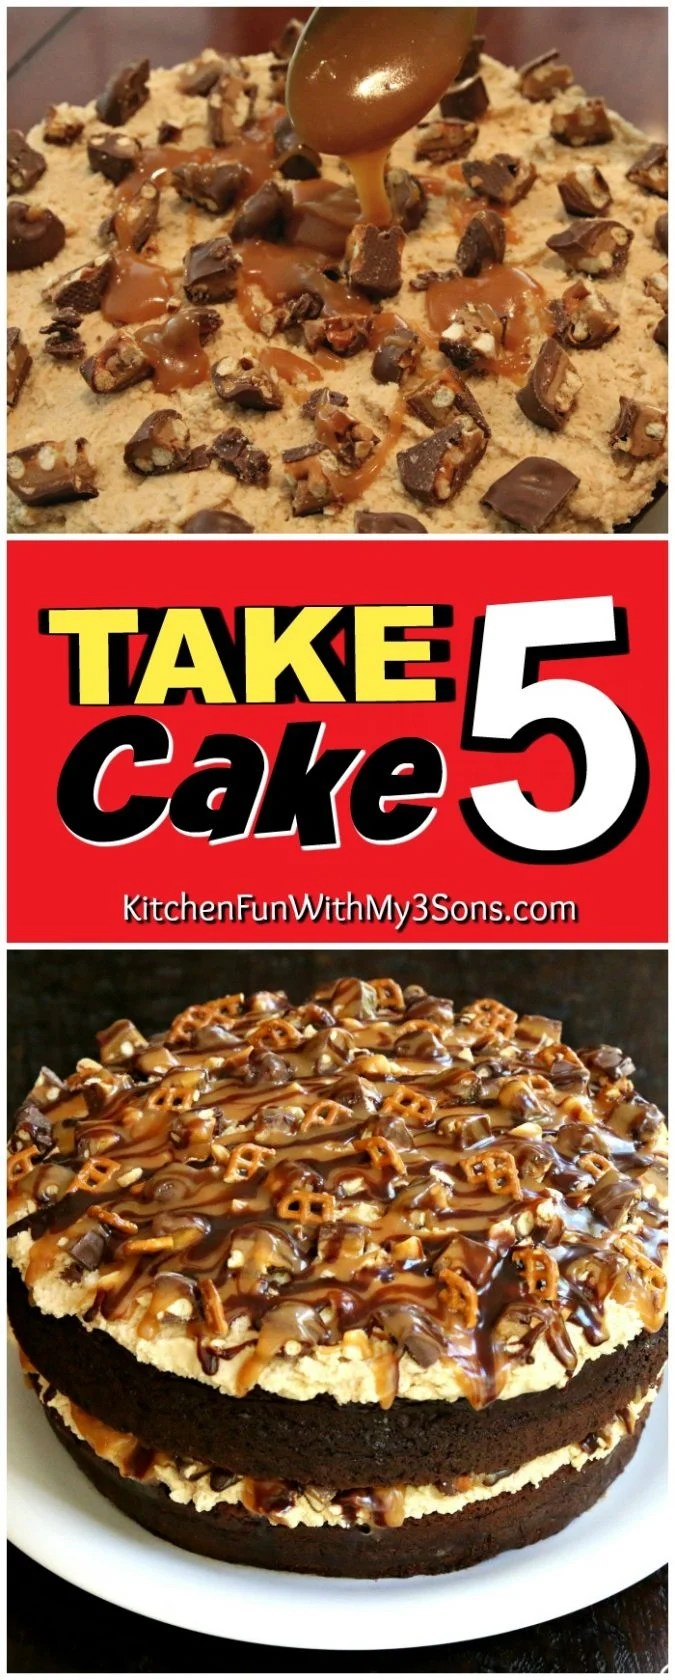 Take 5 Cake...these are the BEST Cake Recipes!